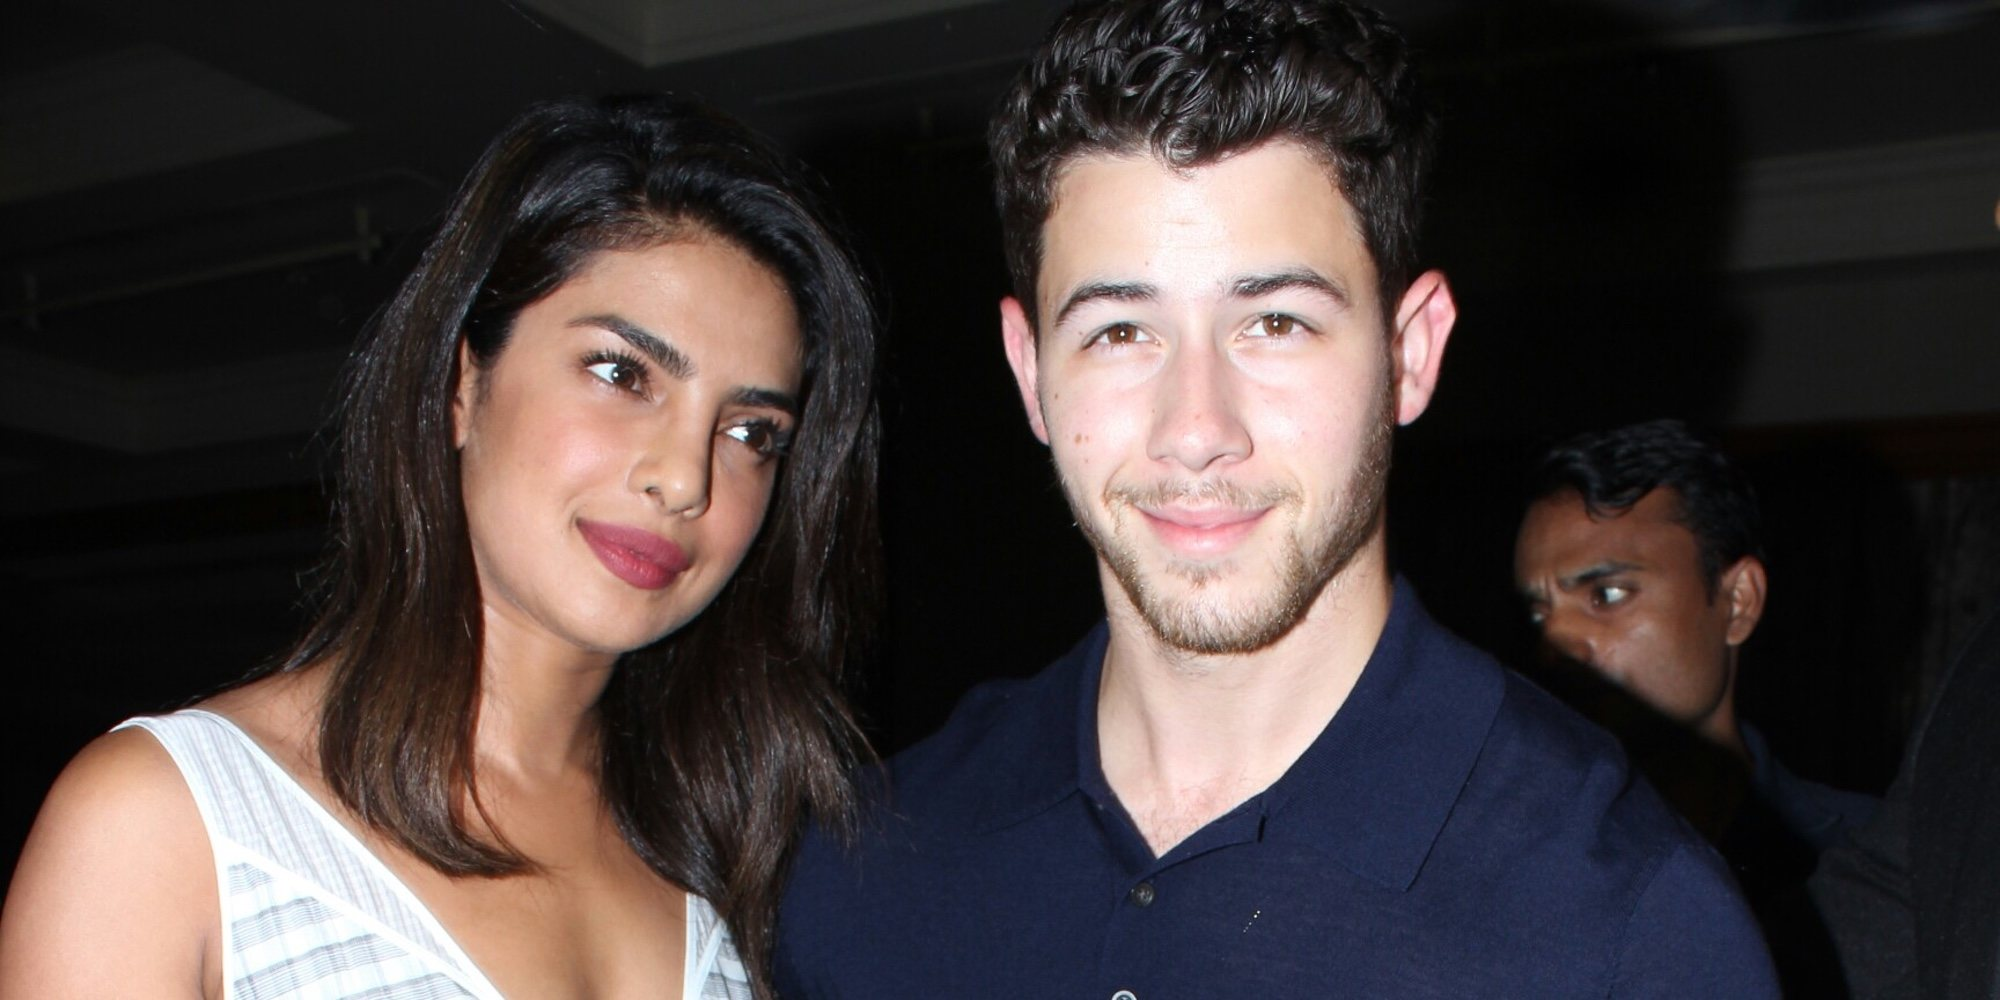 Nick Jonas y Priyanka Chopra confirman su futura boda durante su viaje familiar a La India